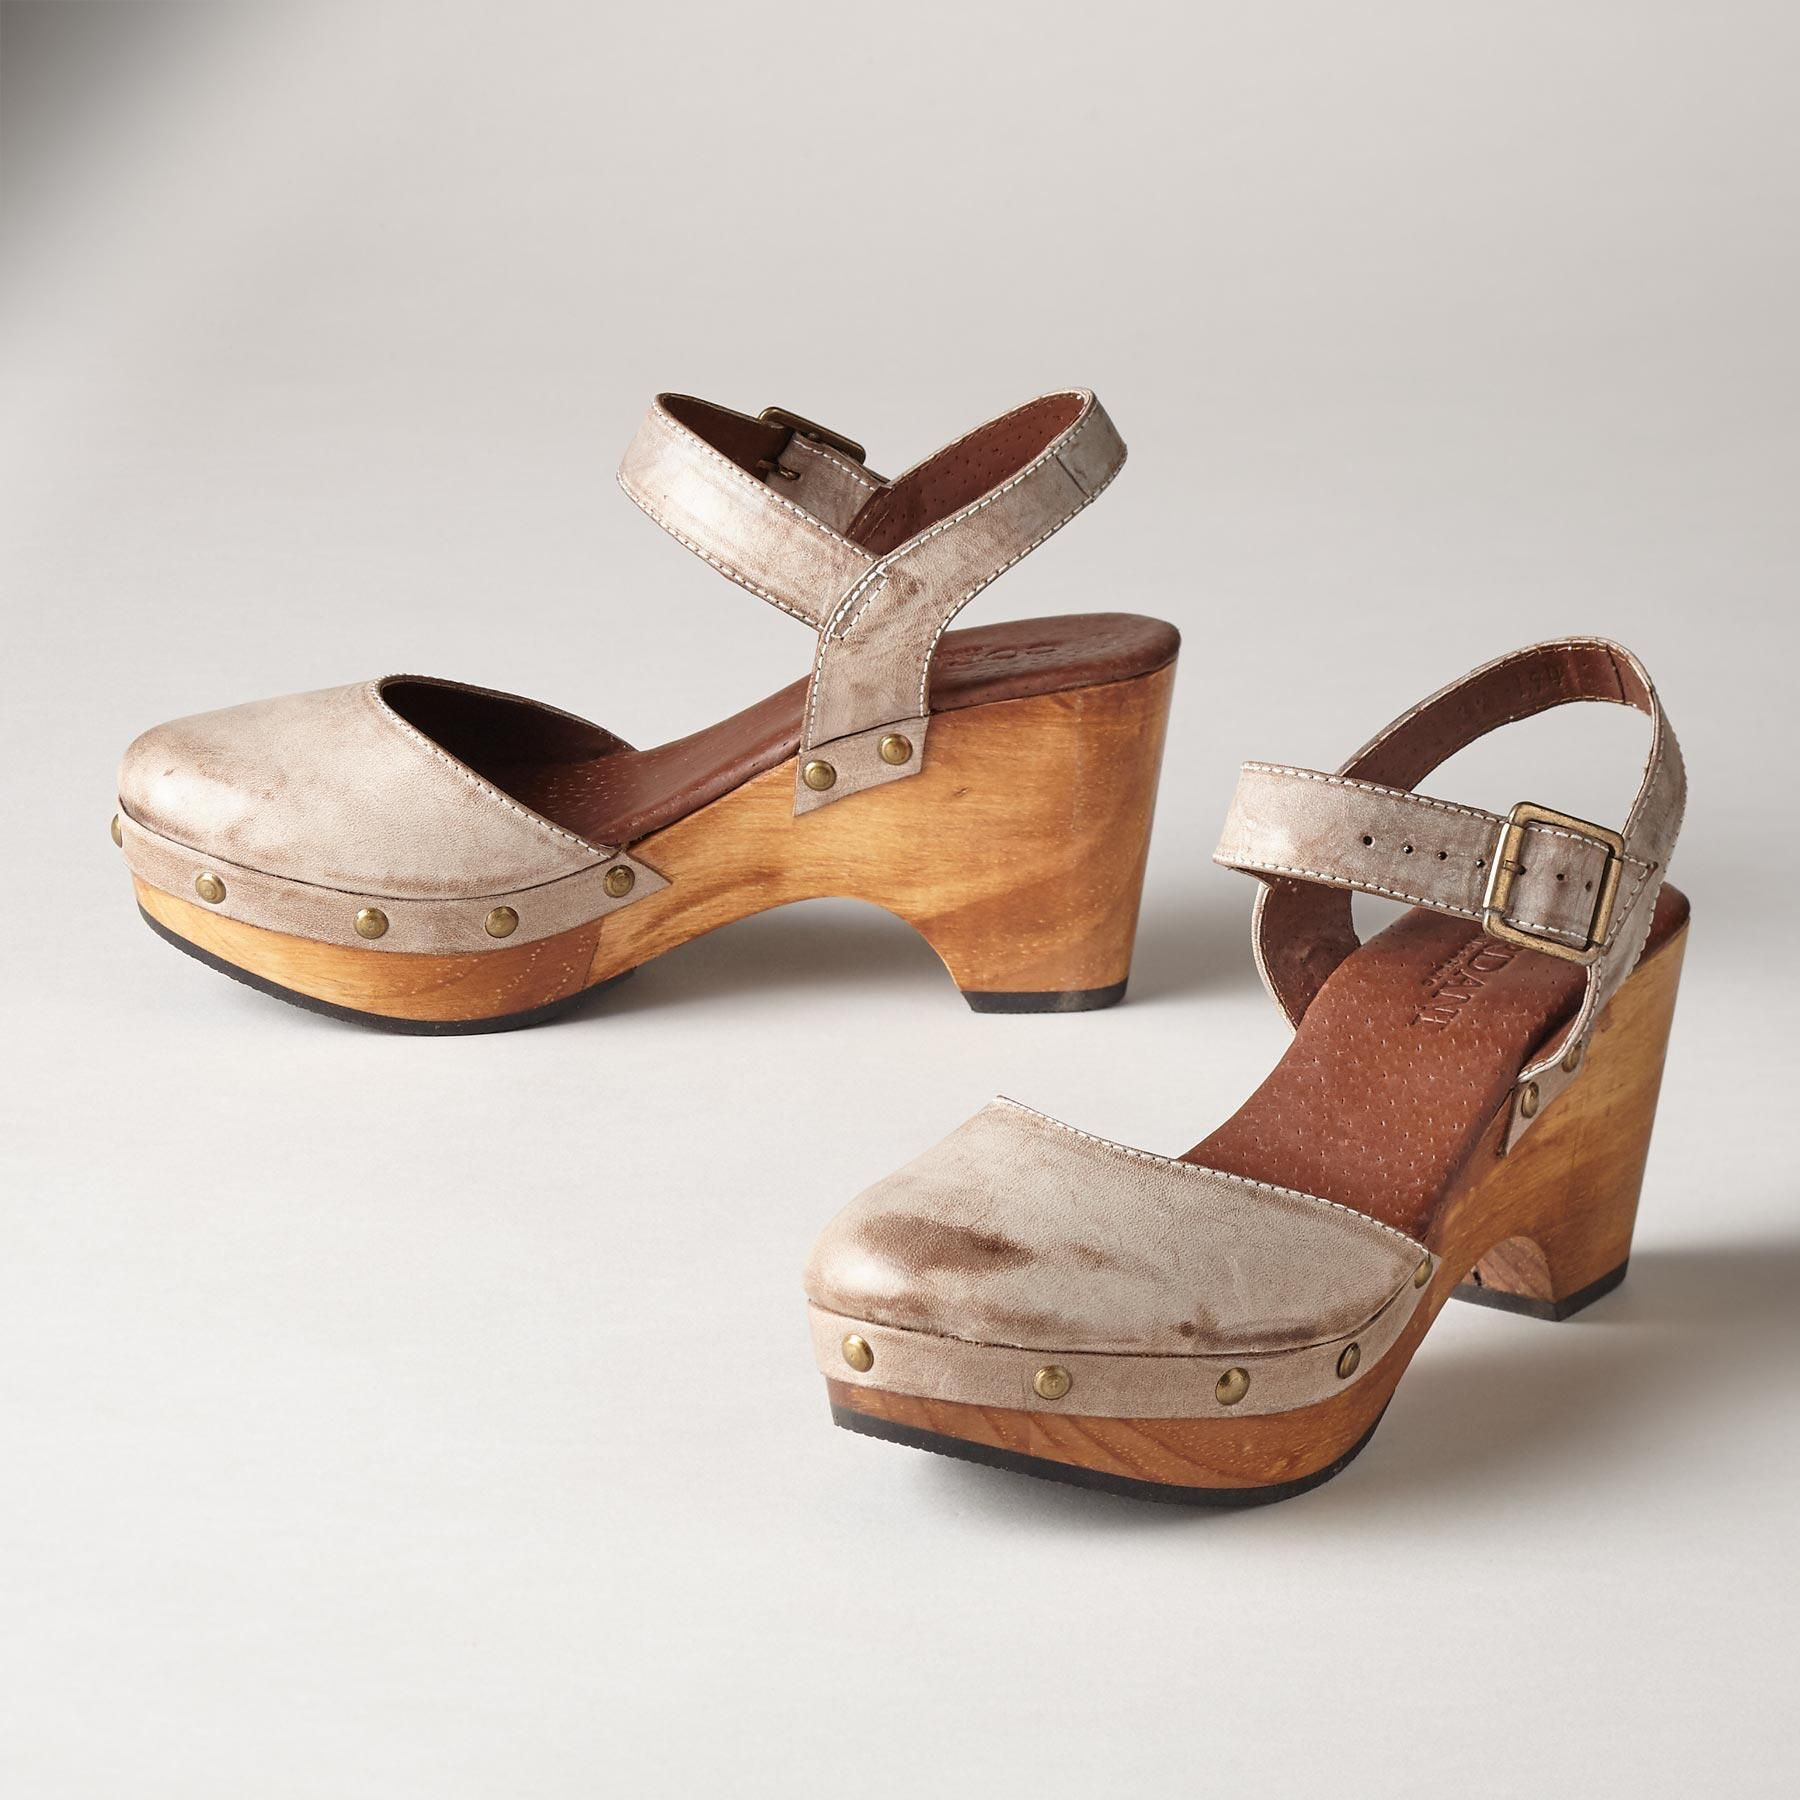 Marika Sandals Mary Jane Meets The Clog In Chestnut Vegetable Tendencies Footbed 2 Strap Brown 41 Tanned Leather With Iconic Ankle And A Polished Wood Platform Wedge